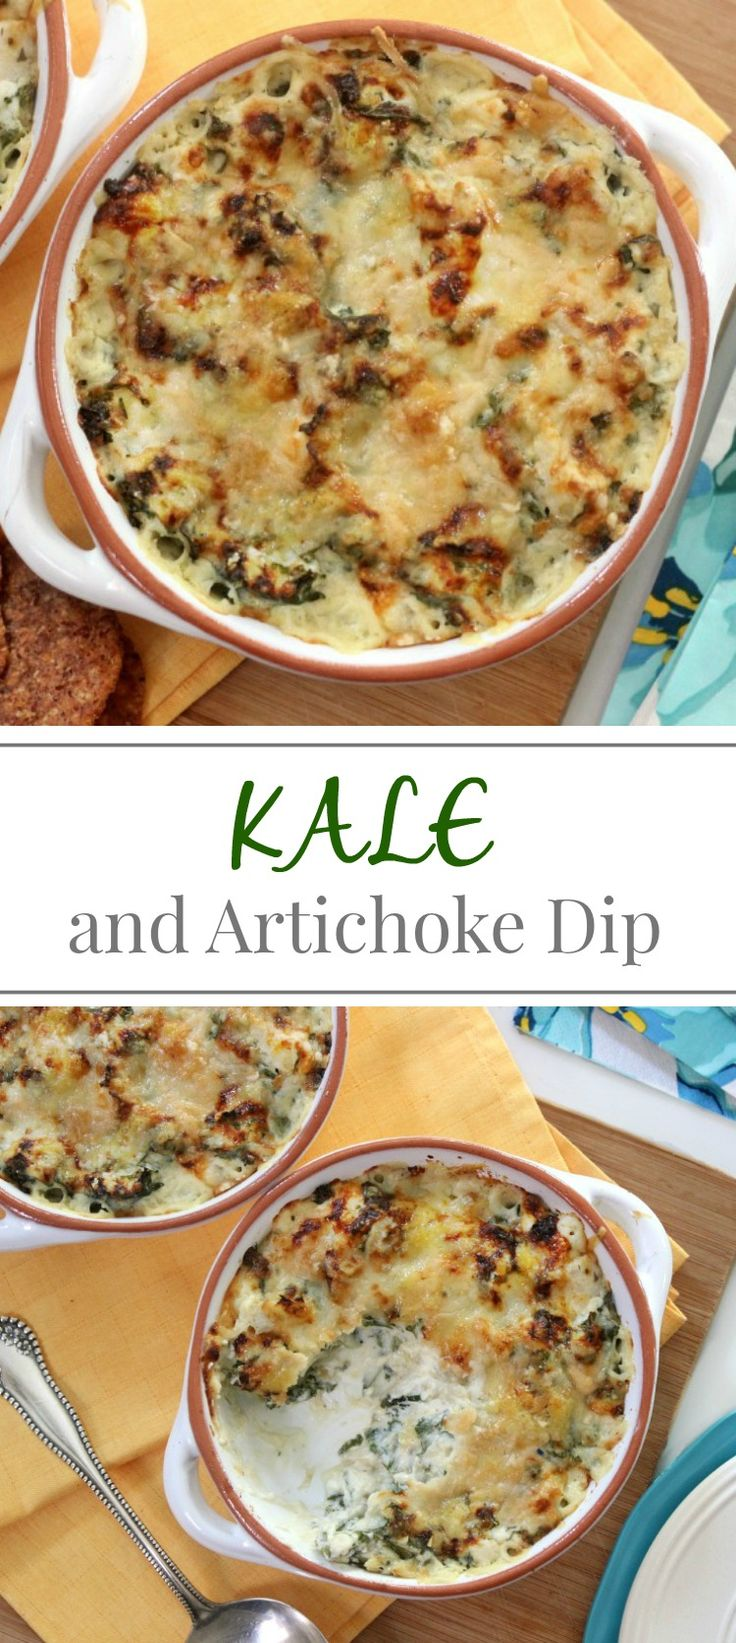 Kale and Artichoke Dip | Simply Fresh Dinners...delicious update to the traditional artichoke dip